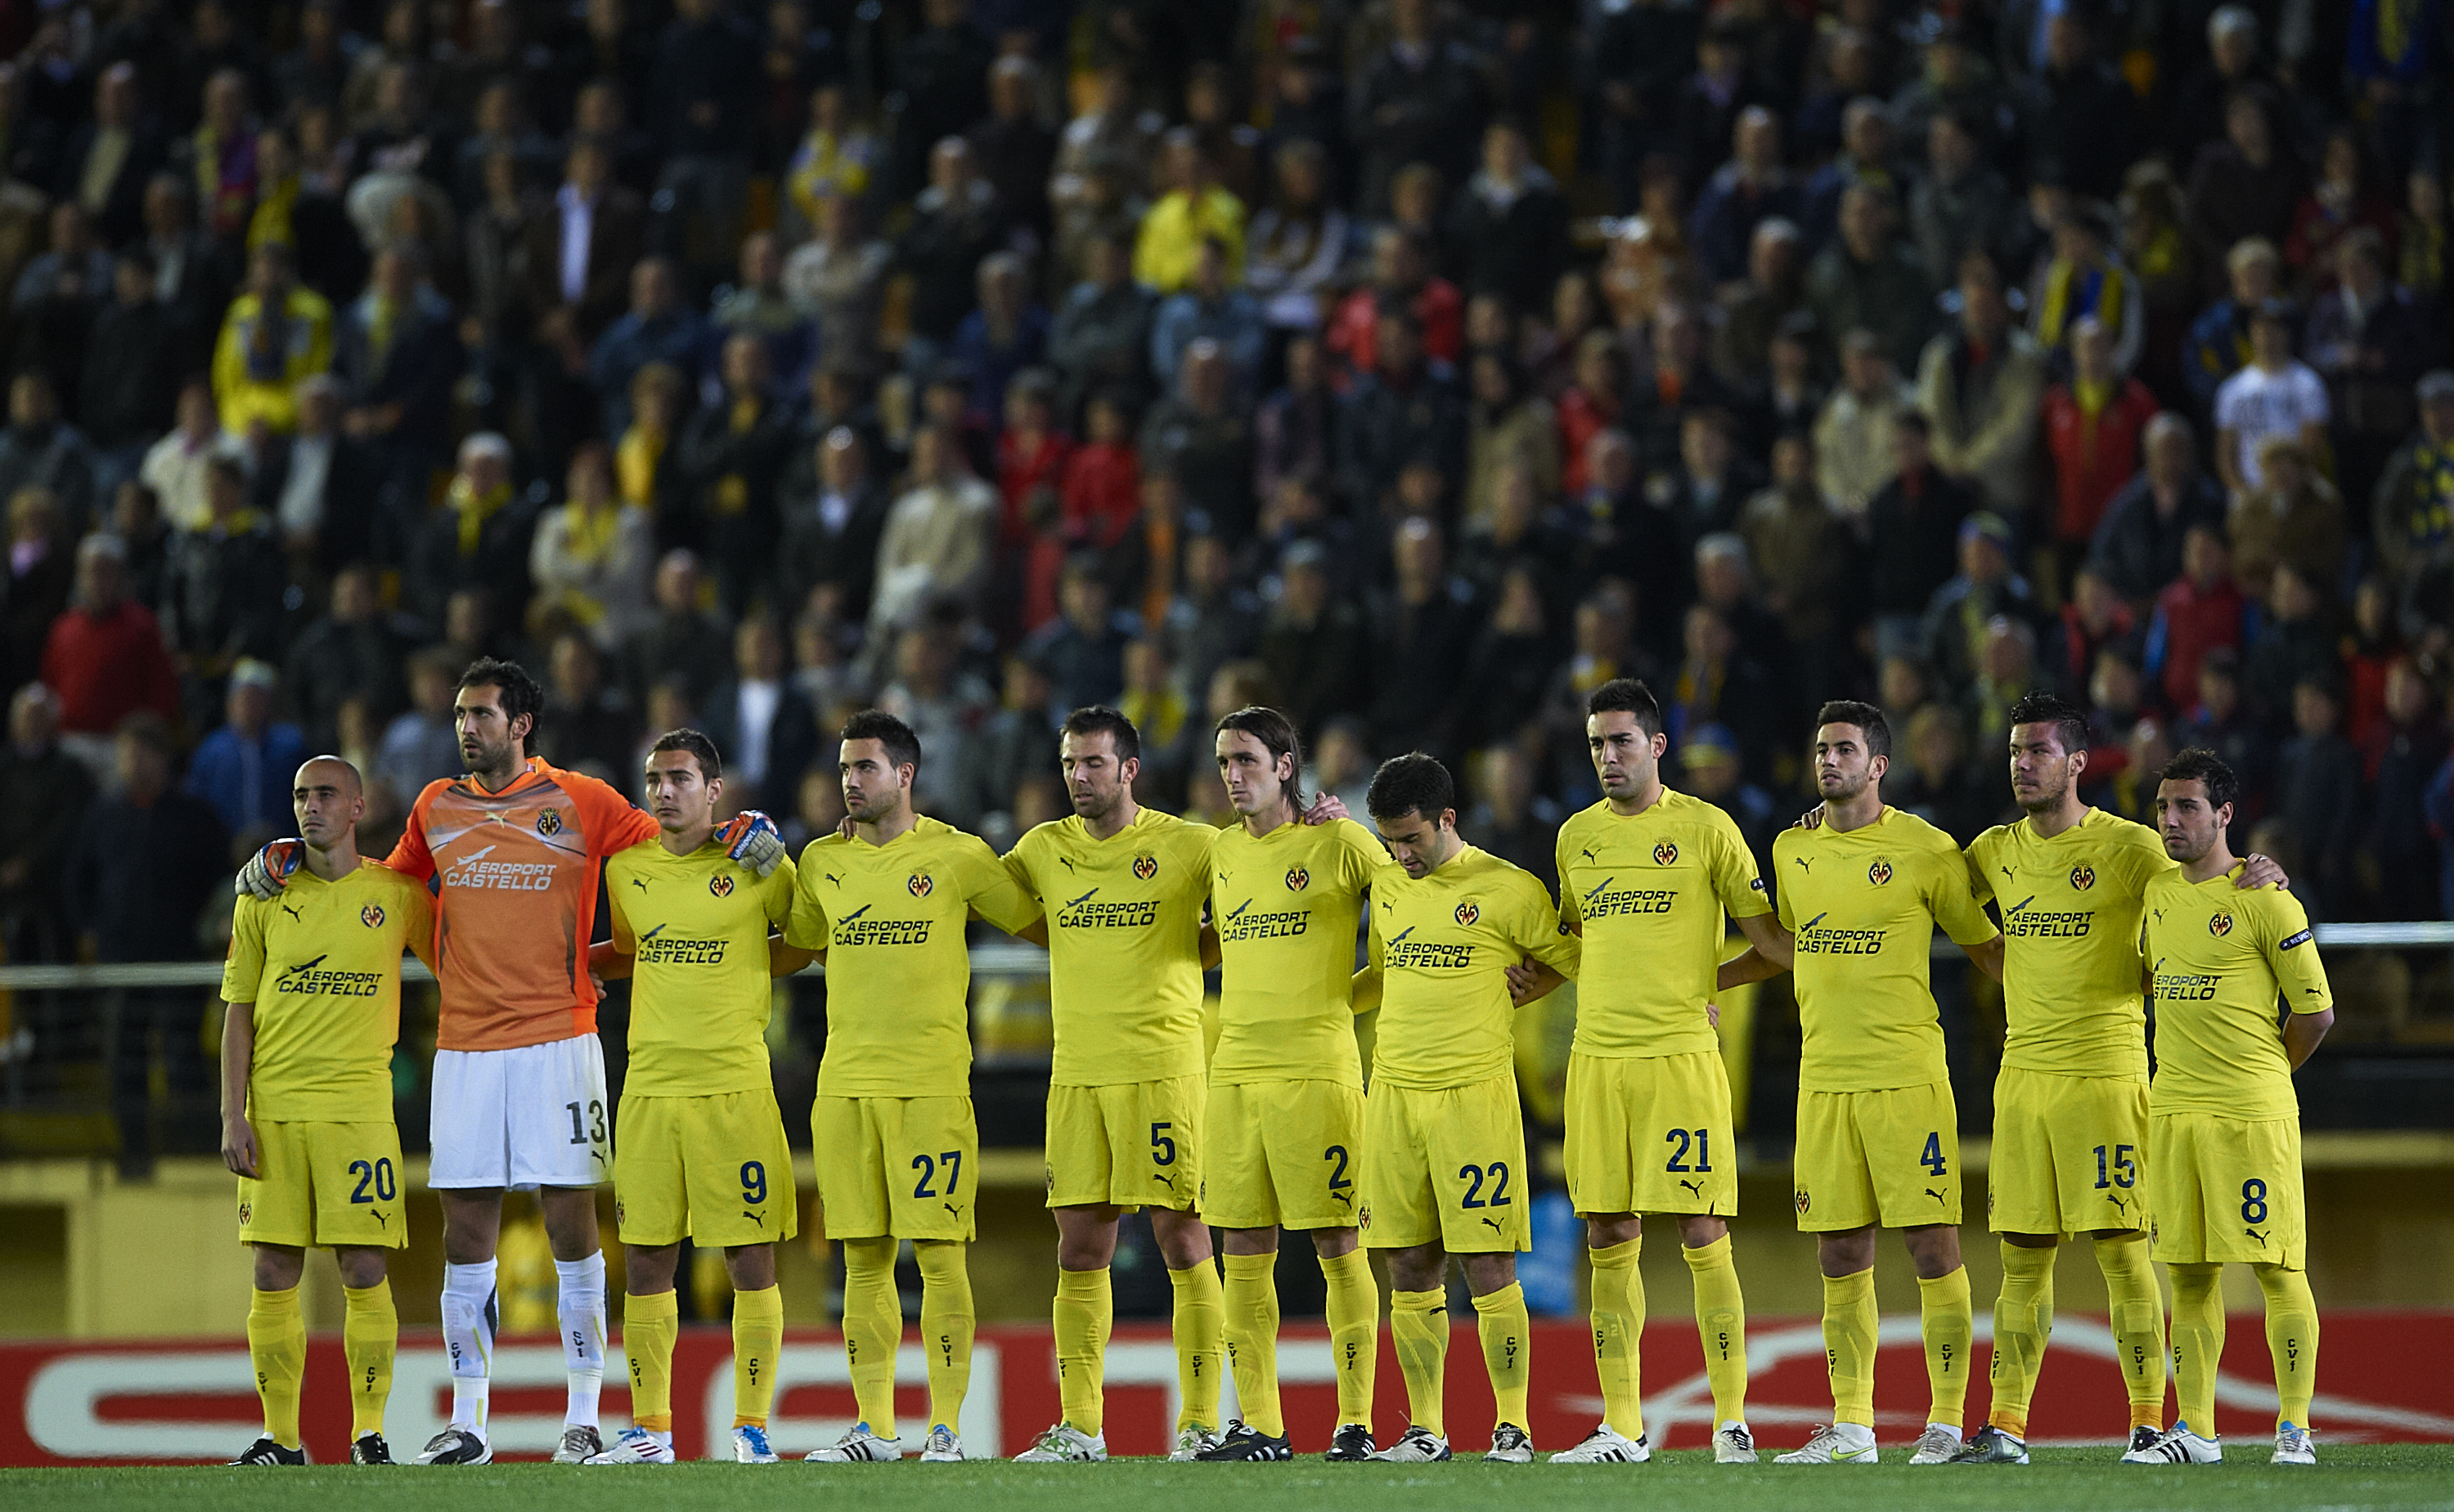 VILLAREAL, SPAIN - MARCH 17:  The Villarreal team observe a minutes silence for the victims of the Japan disaster ahead of the UEFA Europa League round of 16 second leg match between Villarreal and Bayer Leverkusen at El Madrigal stadium on March 17, 2011